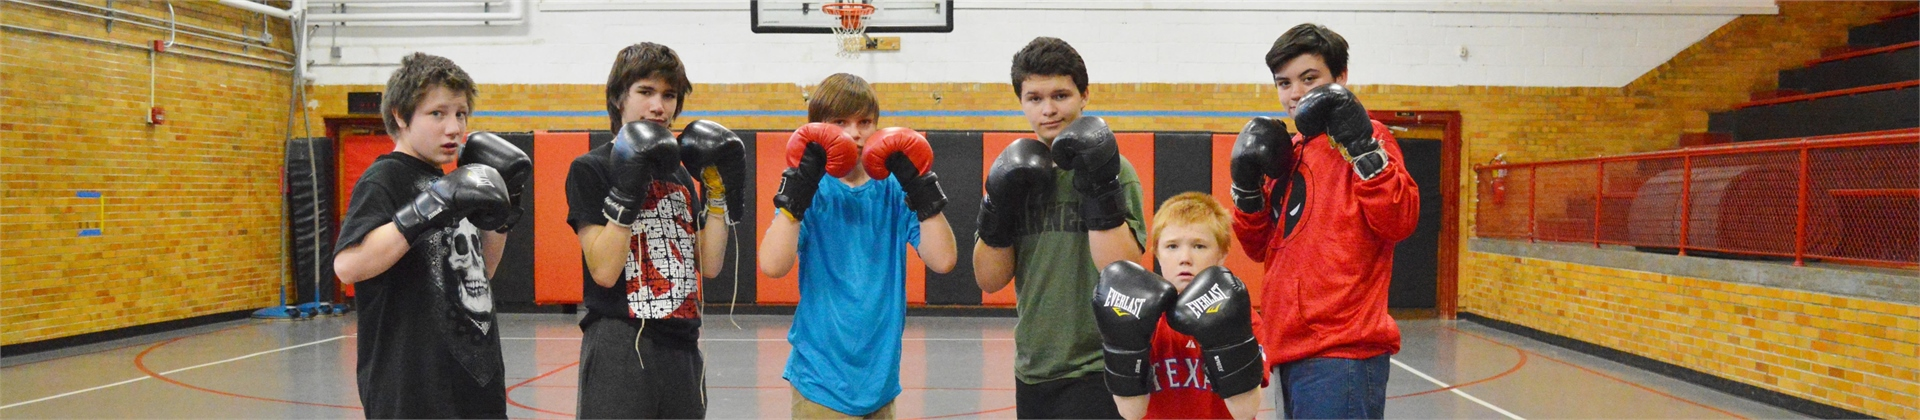 Learning to Box in SOAR!